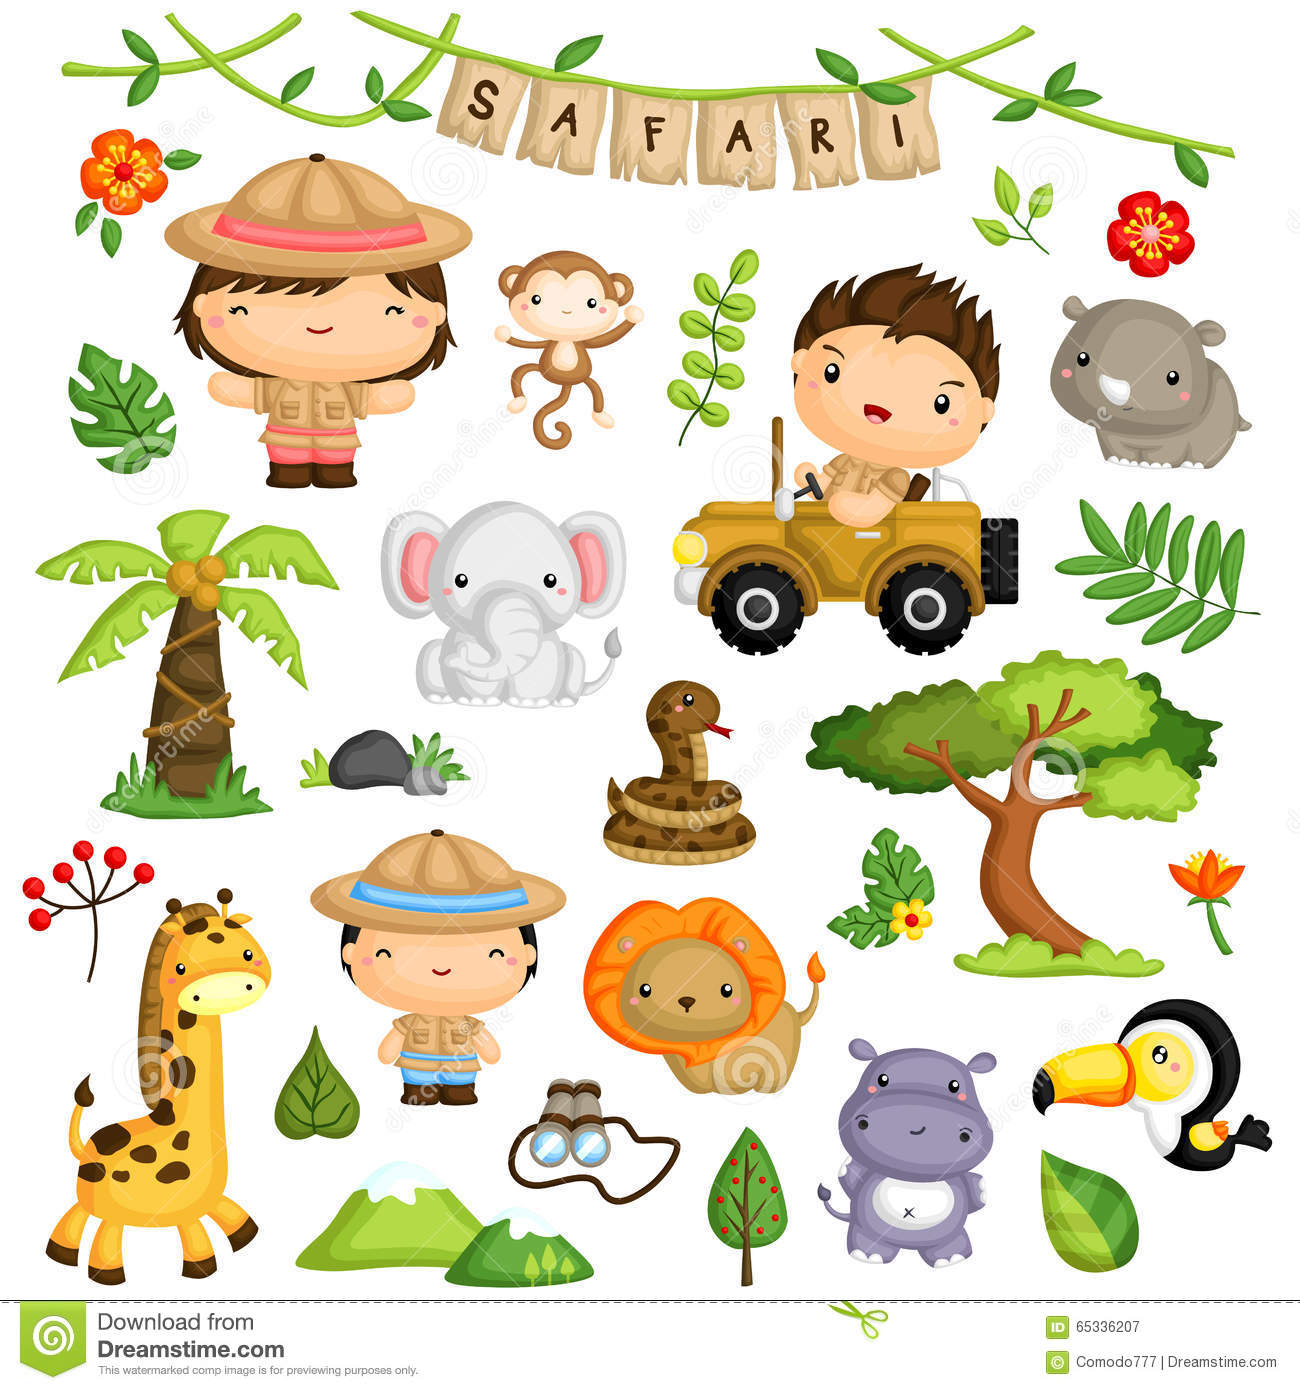 Sistema del vector de Safari Forest Kids y del animal